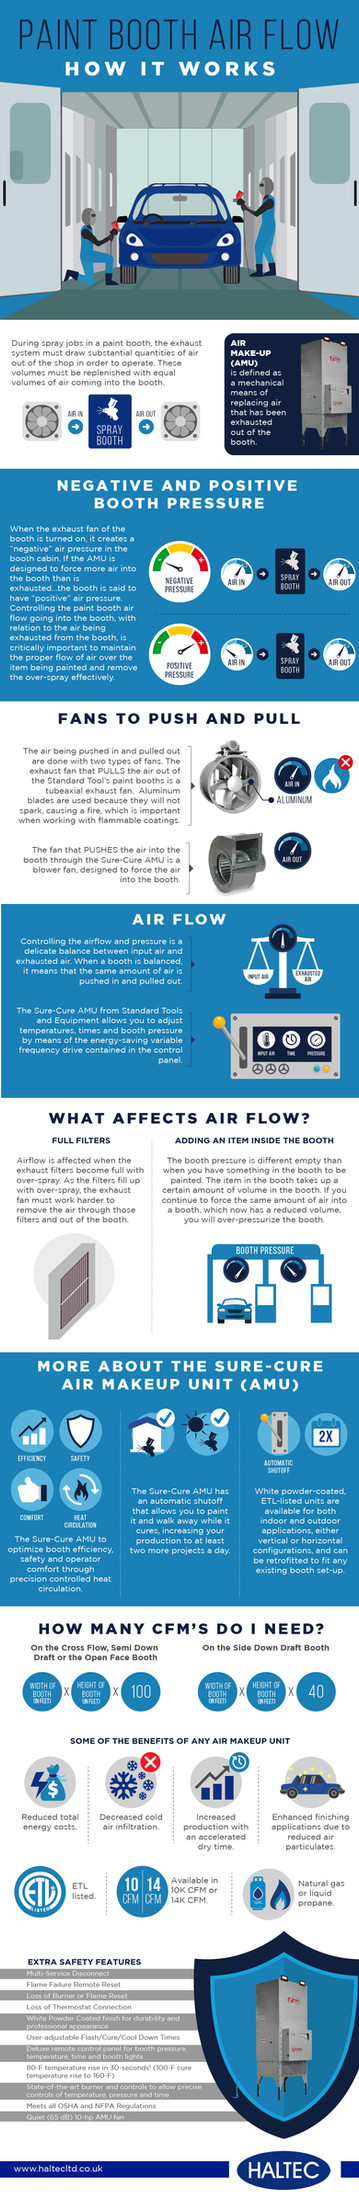 Paint Booth Air Flow